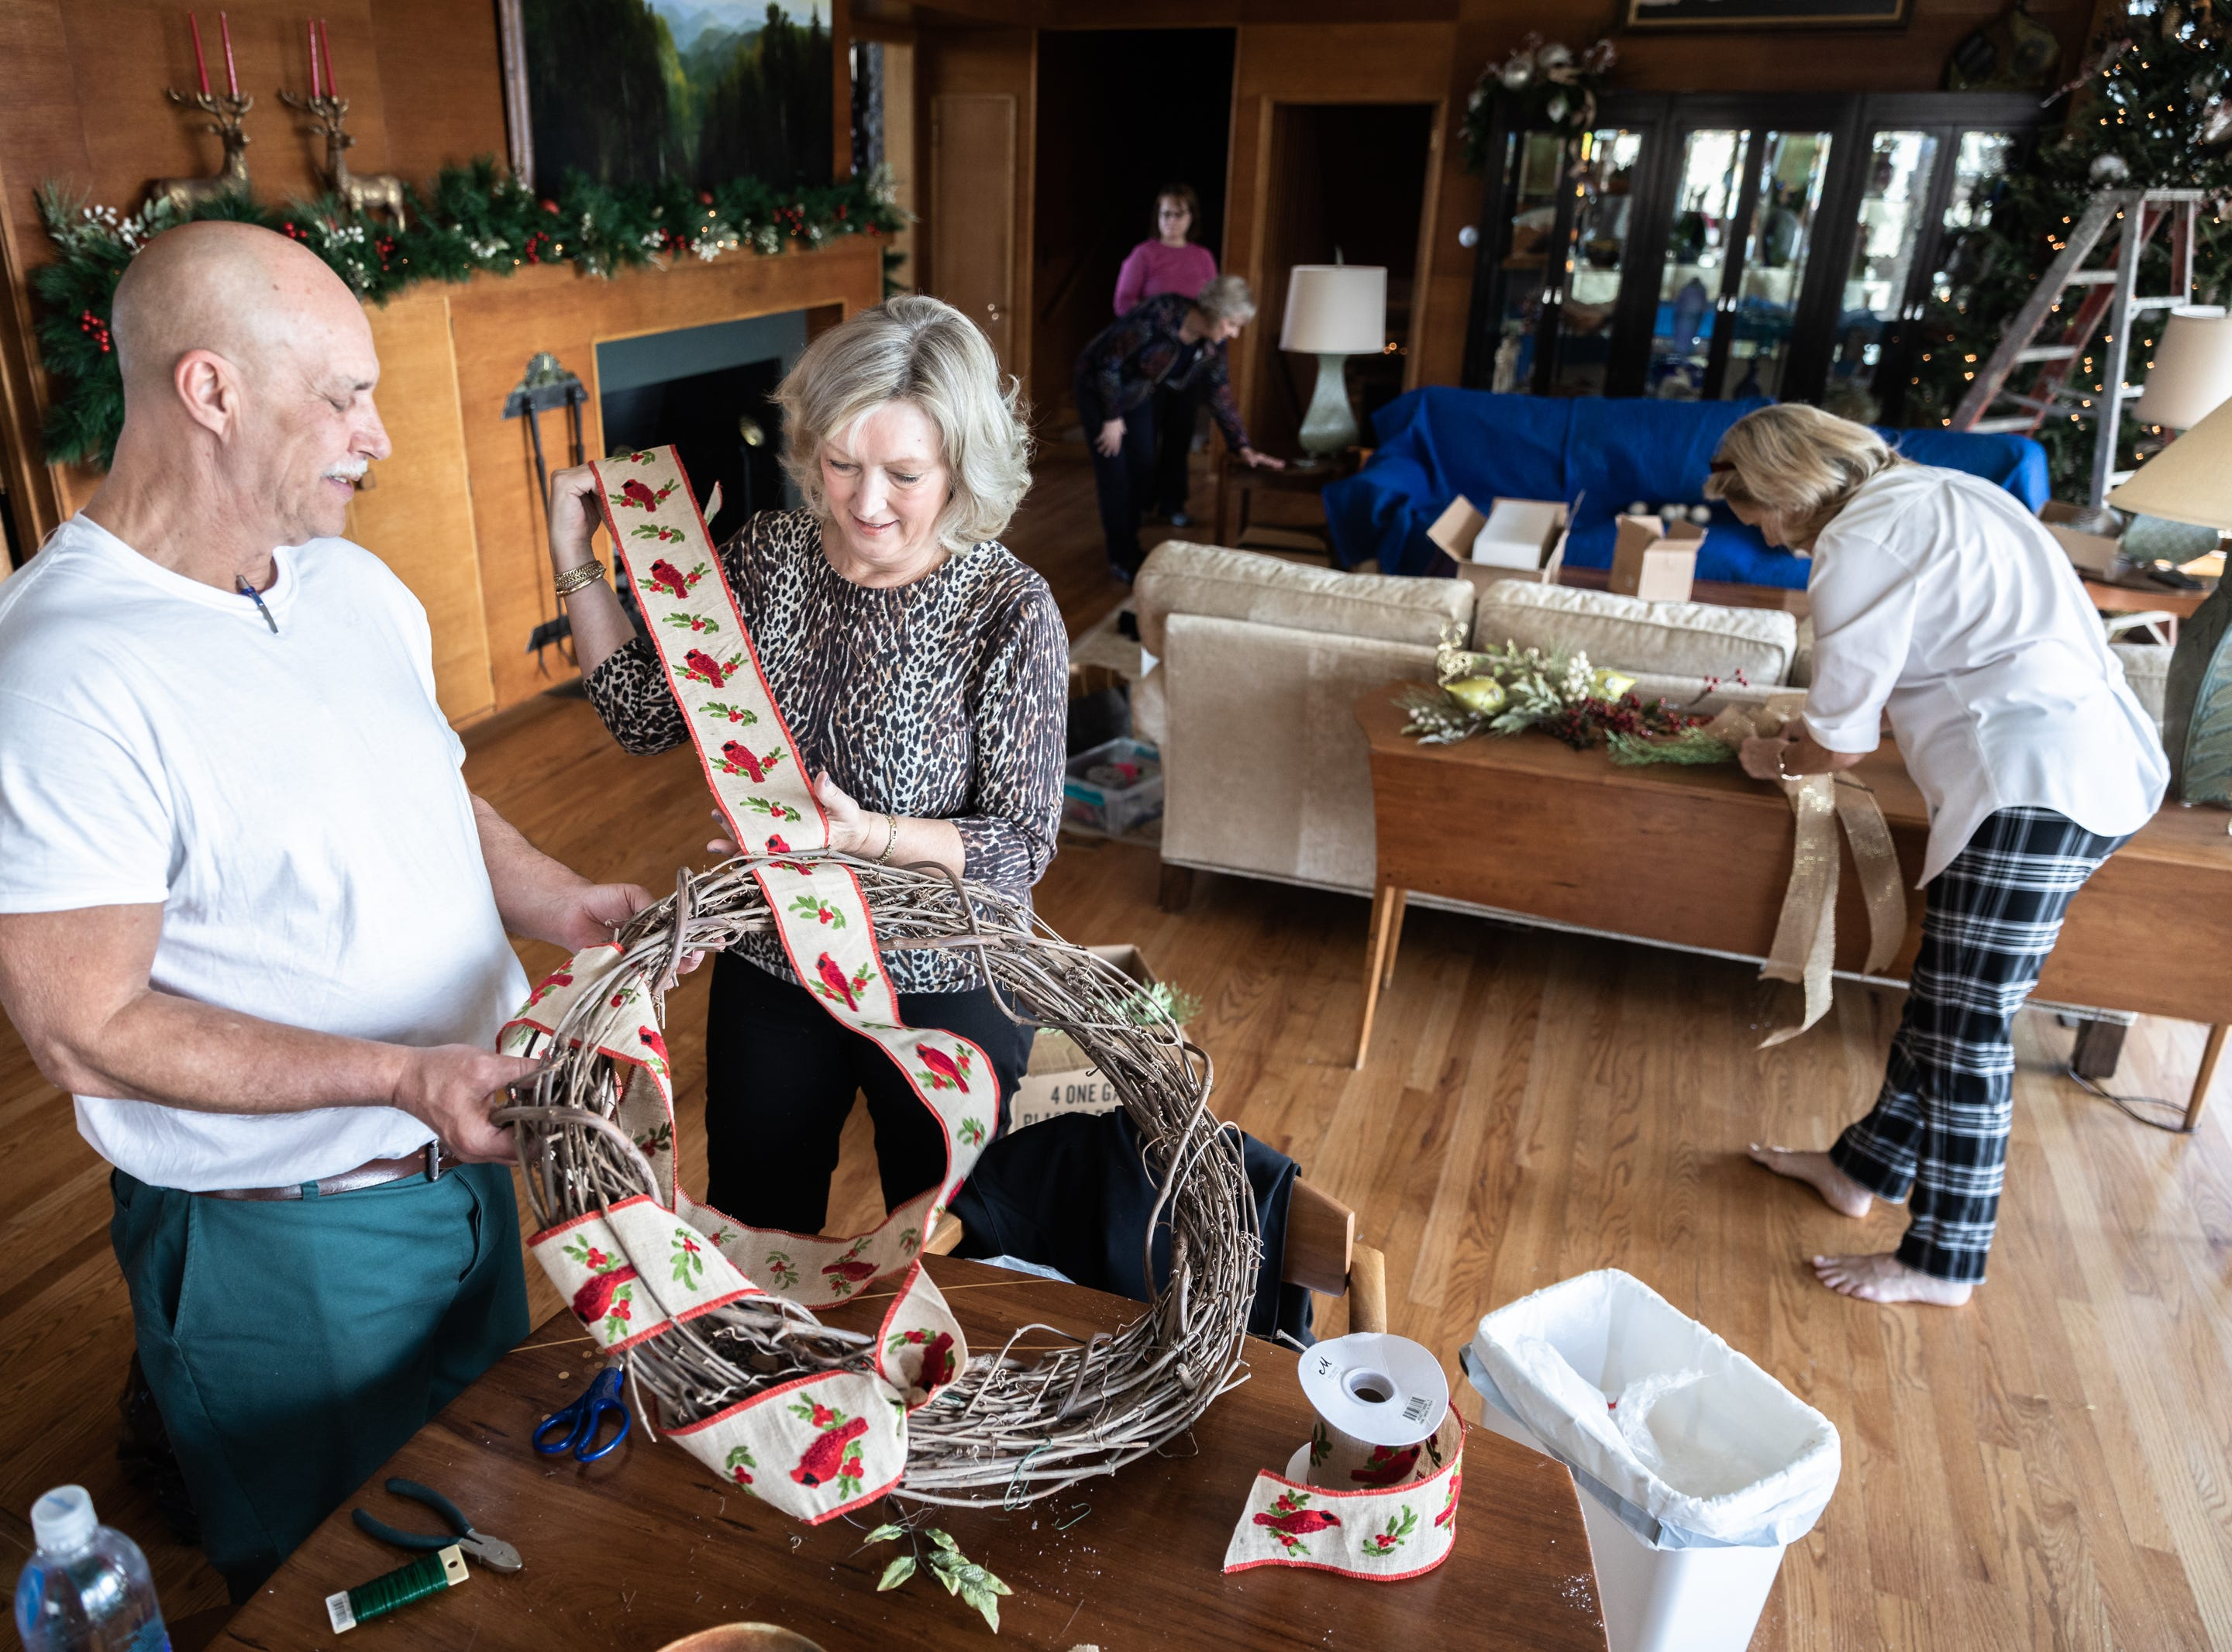 Tony Hartsell, of Asheville, and June Ray, of Waynesville, members of the Governor's Western Residence Board of Directors, work on assembling a wreath for the holidays at the residence on Patton Mountain Road in Asheville, Nov. 29, 2018.